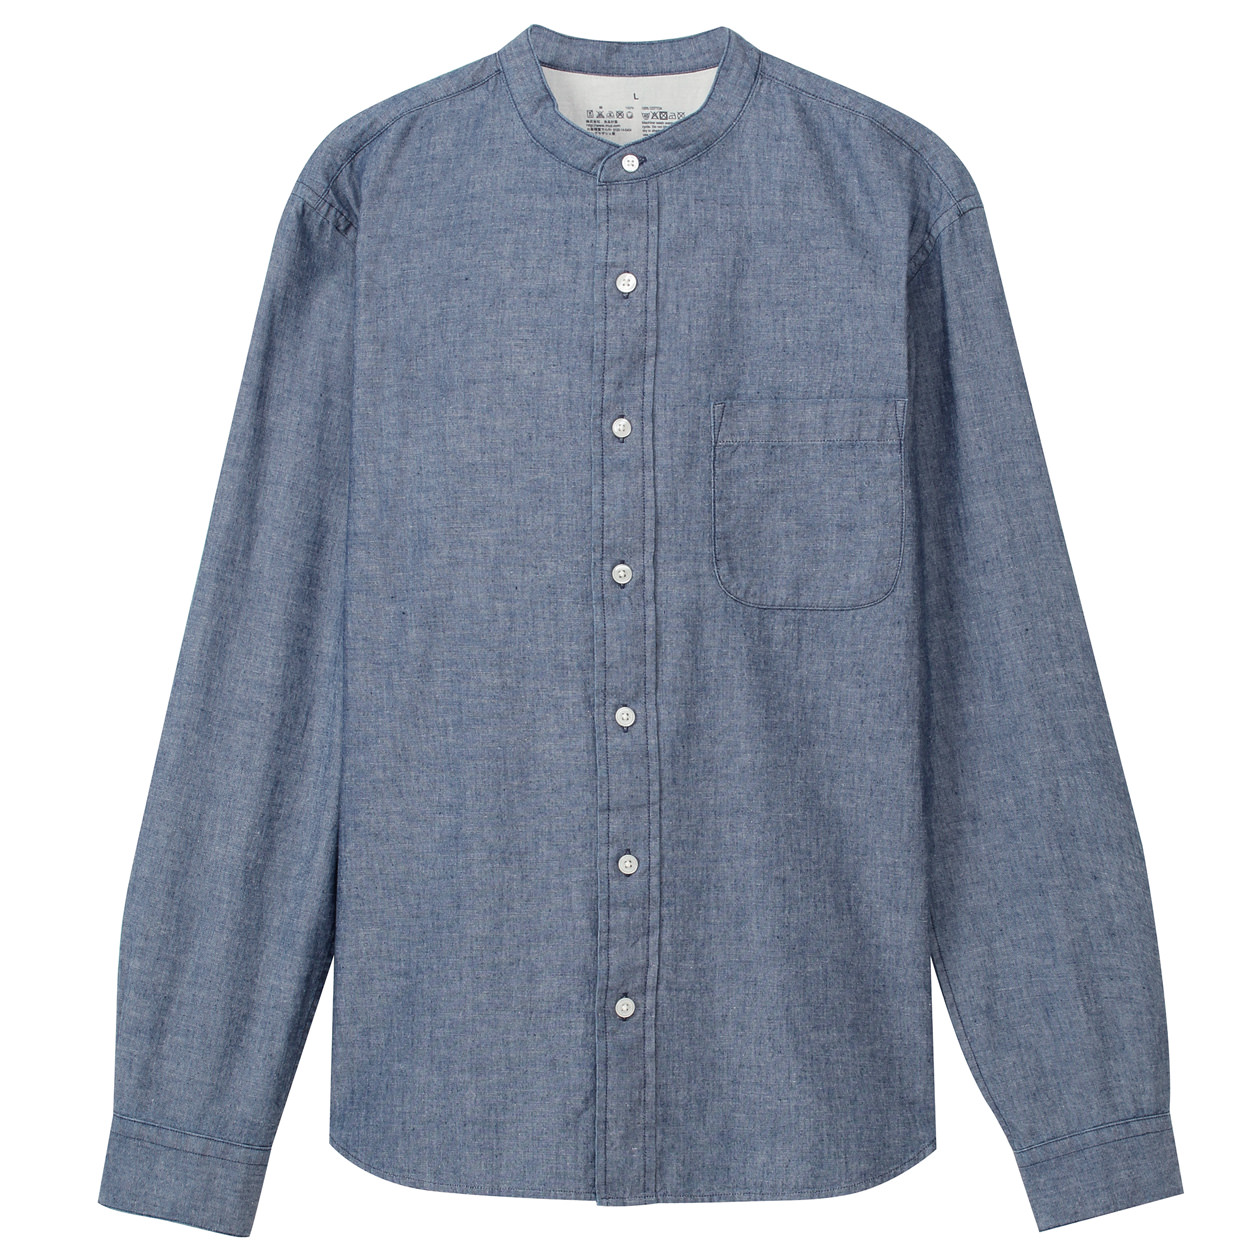 Ogc Indigo Chambray Stand Collar Shirt Men M Navy Muji